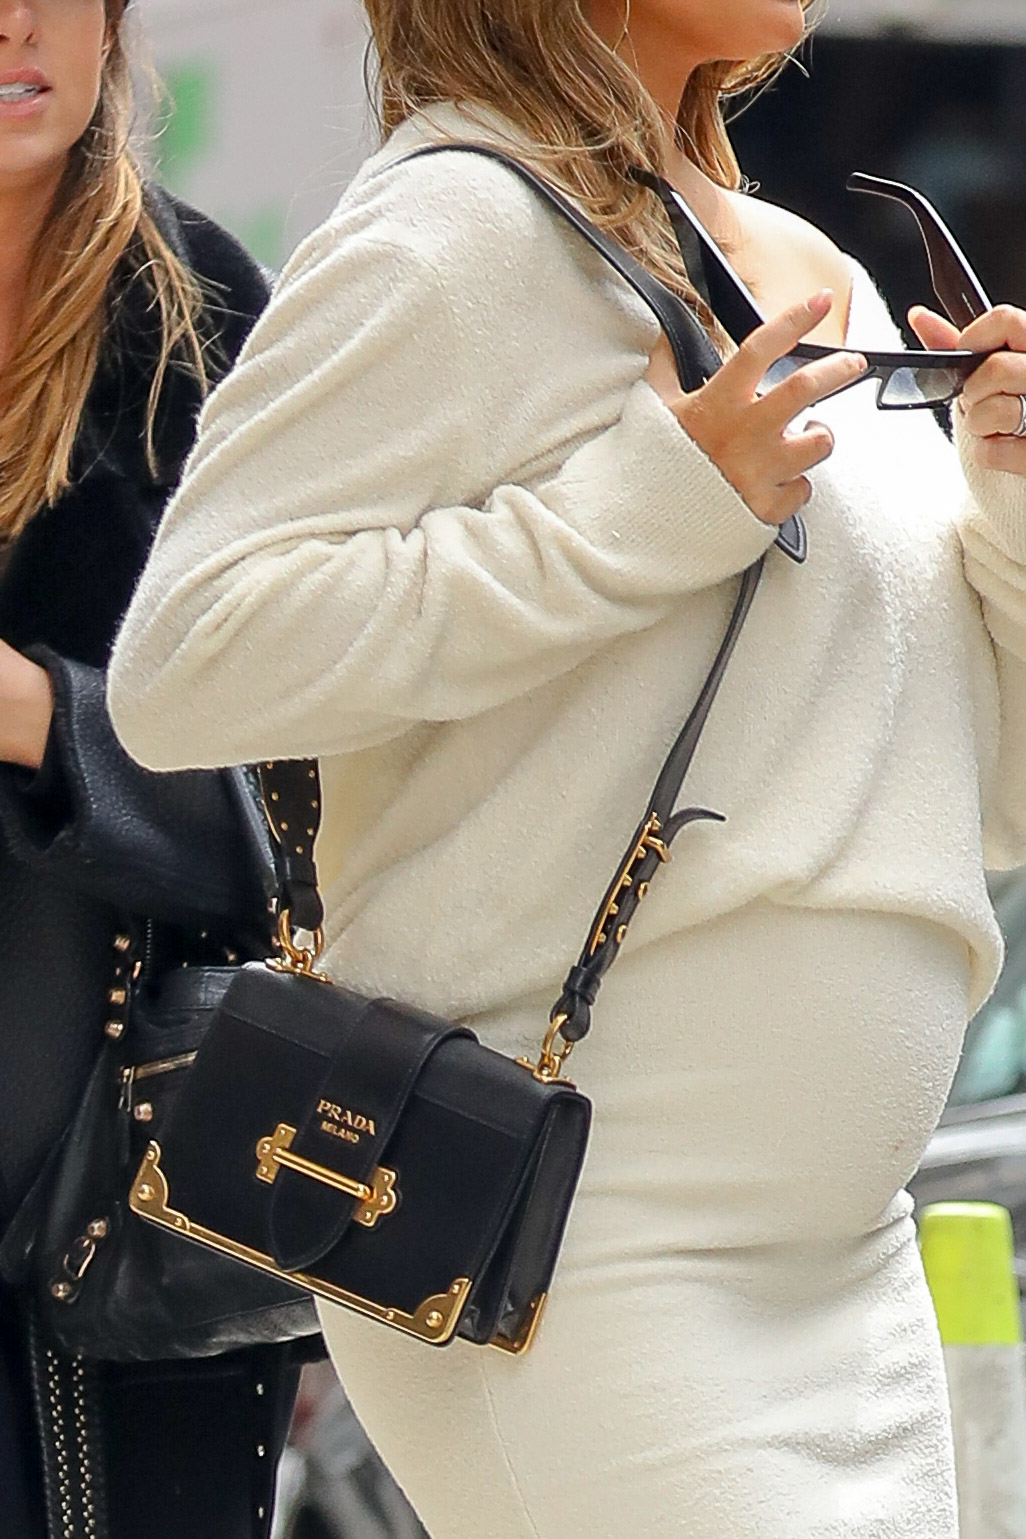 Chrissy Teigen wore display her belly in white outfit while out and about in New York City <P> Pictured: Chrissy Teigen <B>Ref: SPL1676422  270318  </B><BR/> Picture by: Felipe Ramales / Splash News<BR/> </P><P> <B>Splash News and Pictures</B><BR/> Los Angeles:310-821-2666<BR/> New York:212-619-2666<BR/> London:870-934-2666<BR/> <span id=